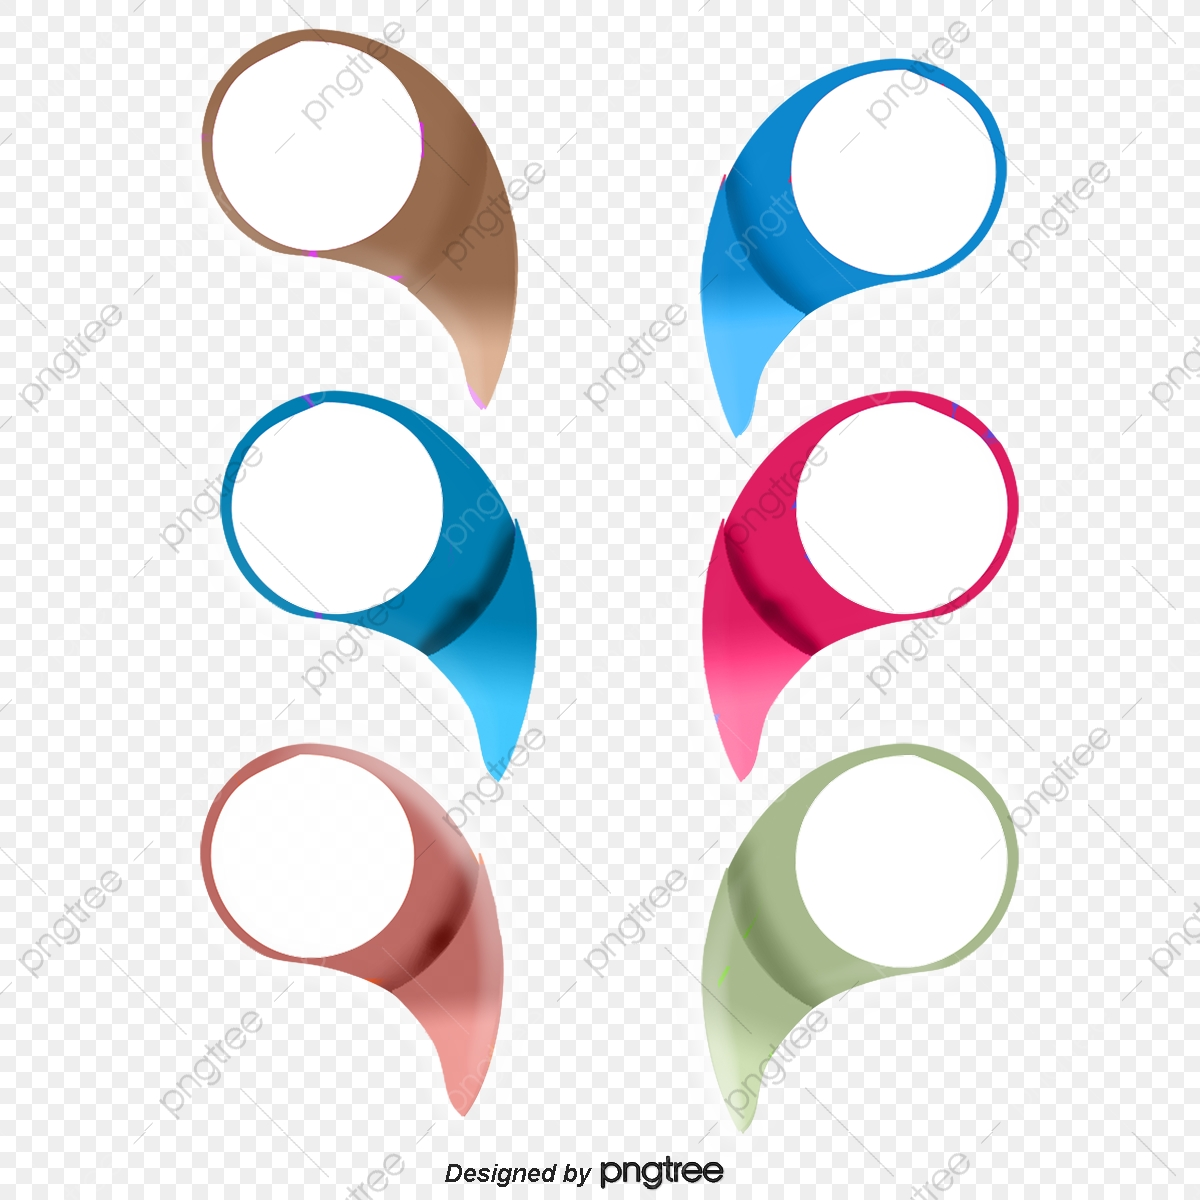 Creative Circle Border Circle Clipart Active Border Png Transparent Clipart Image And Psd File For Free Download